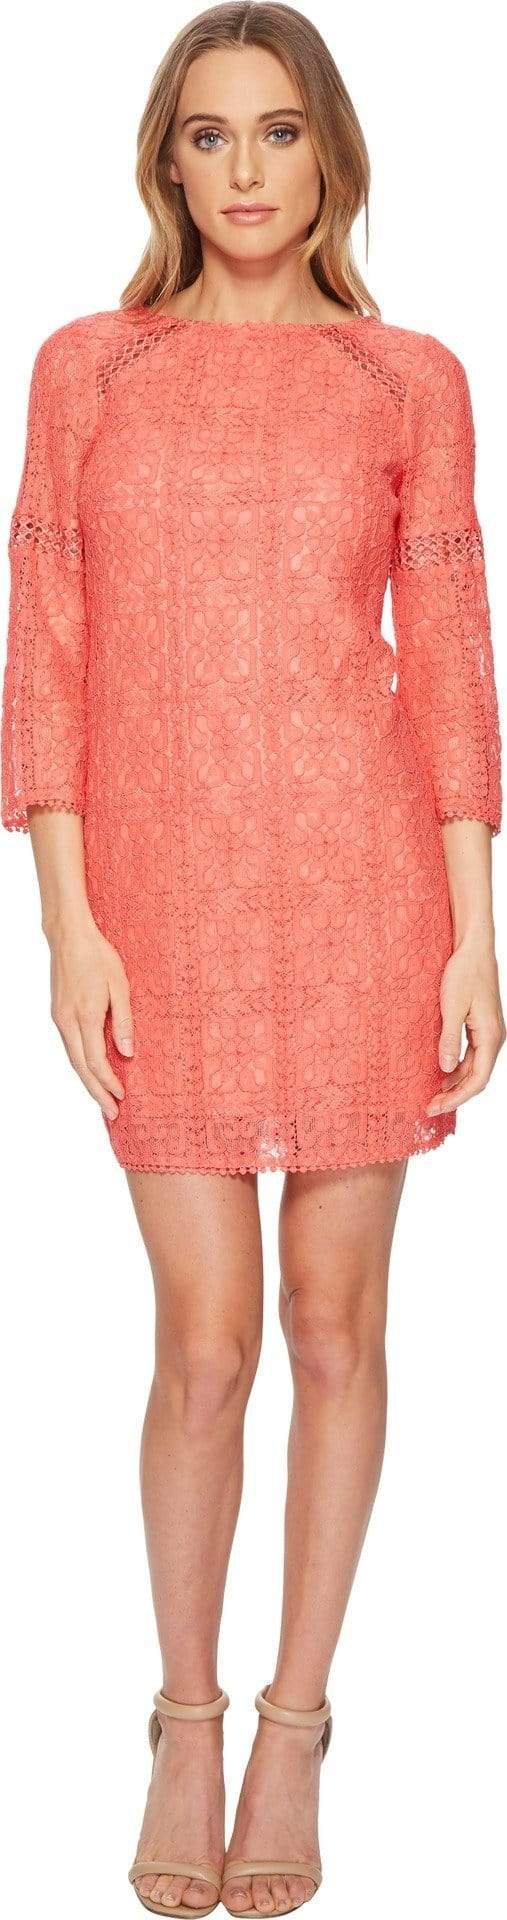 Adrianna Papell - AP1D102465 Quarter Length Sleeve Lace Shift Dress from Adrianna Papell